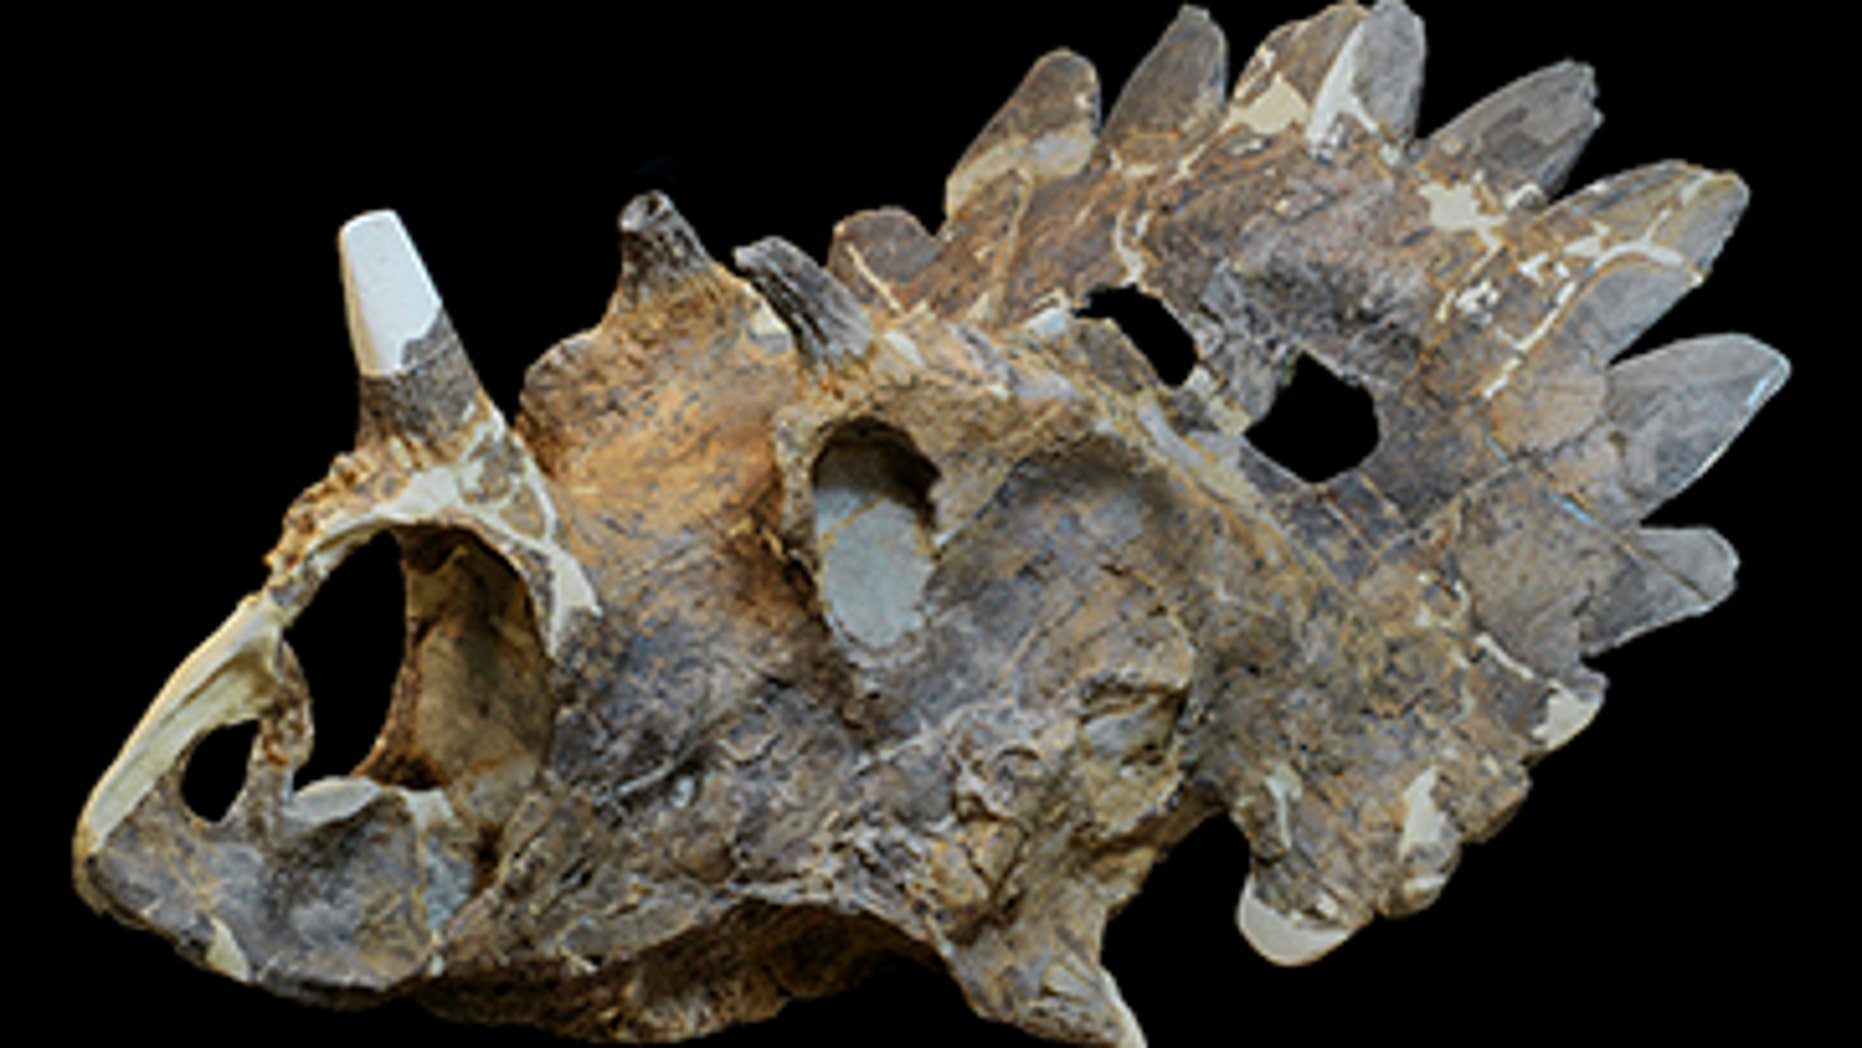 Regaliceratops peterhewsi is a newly described genus and species of ceratopsid (horned dinosaur)  that lived during the Late Cretaceous 68.5 – 67.5 million years ago.